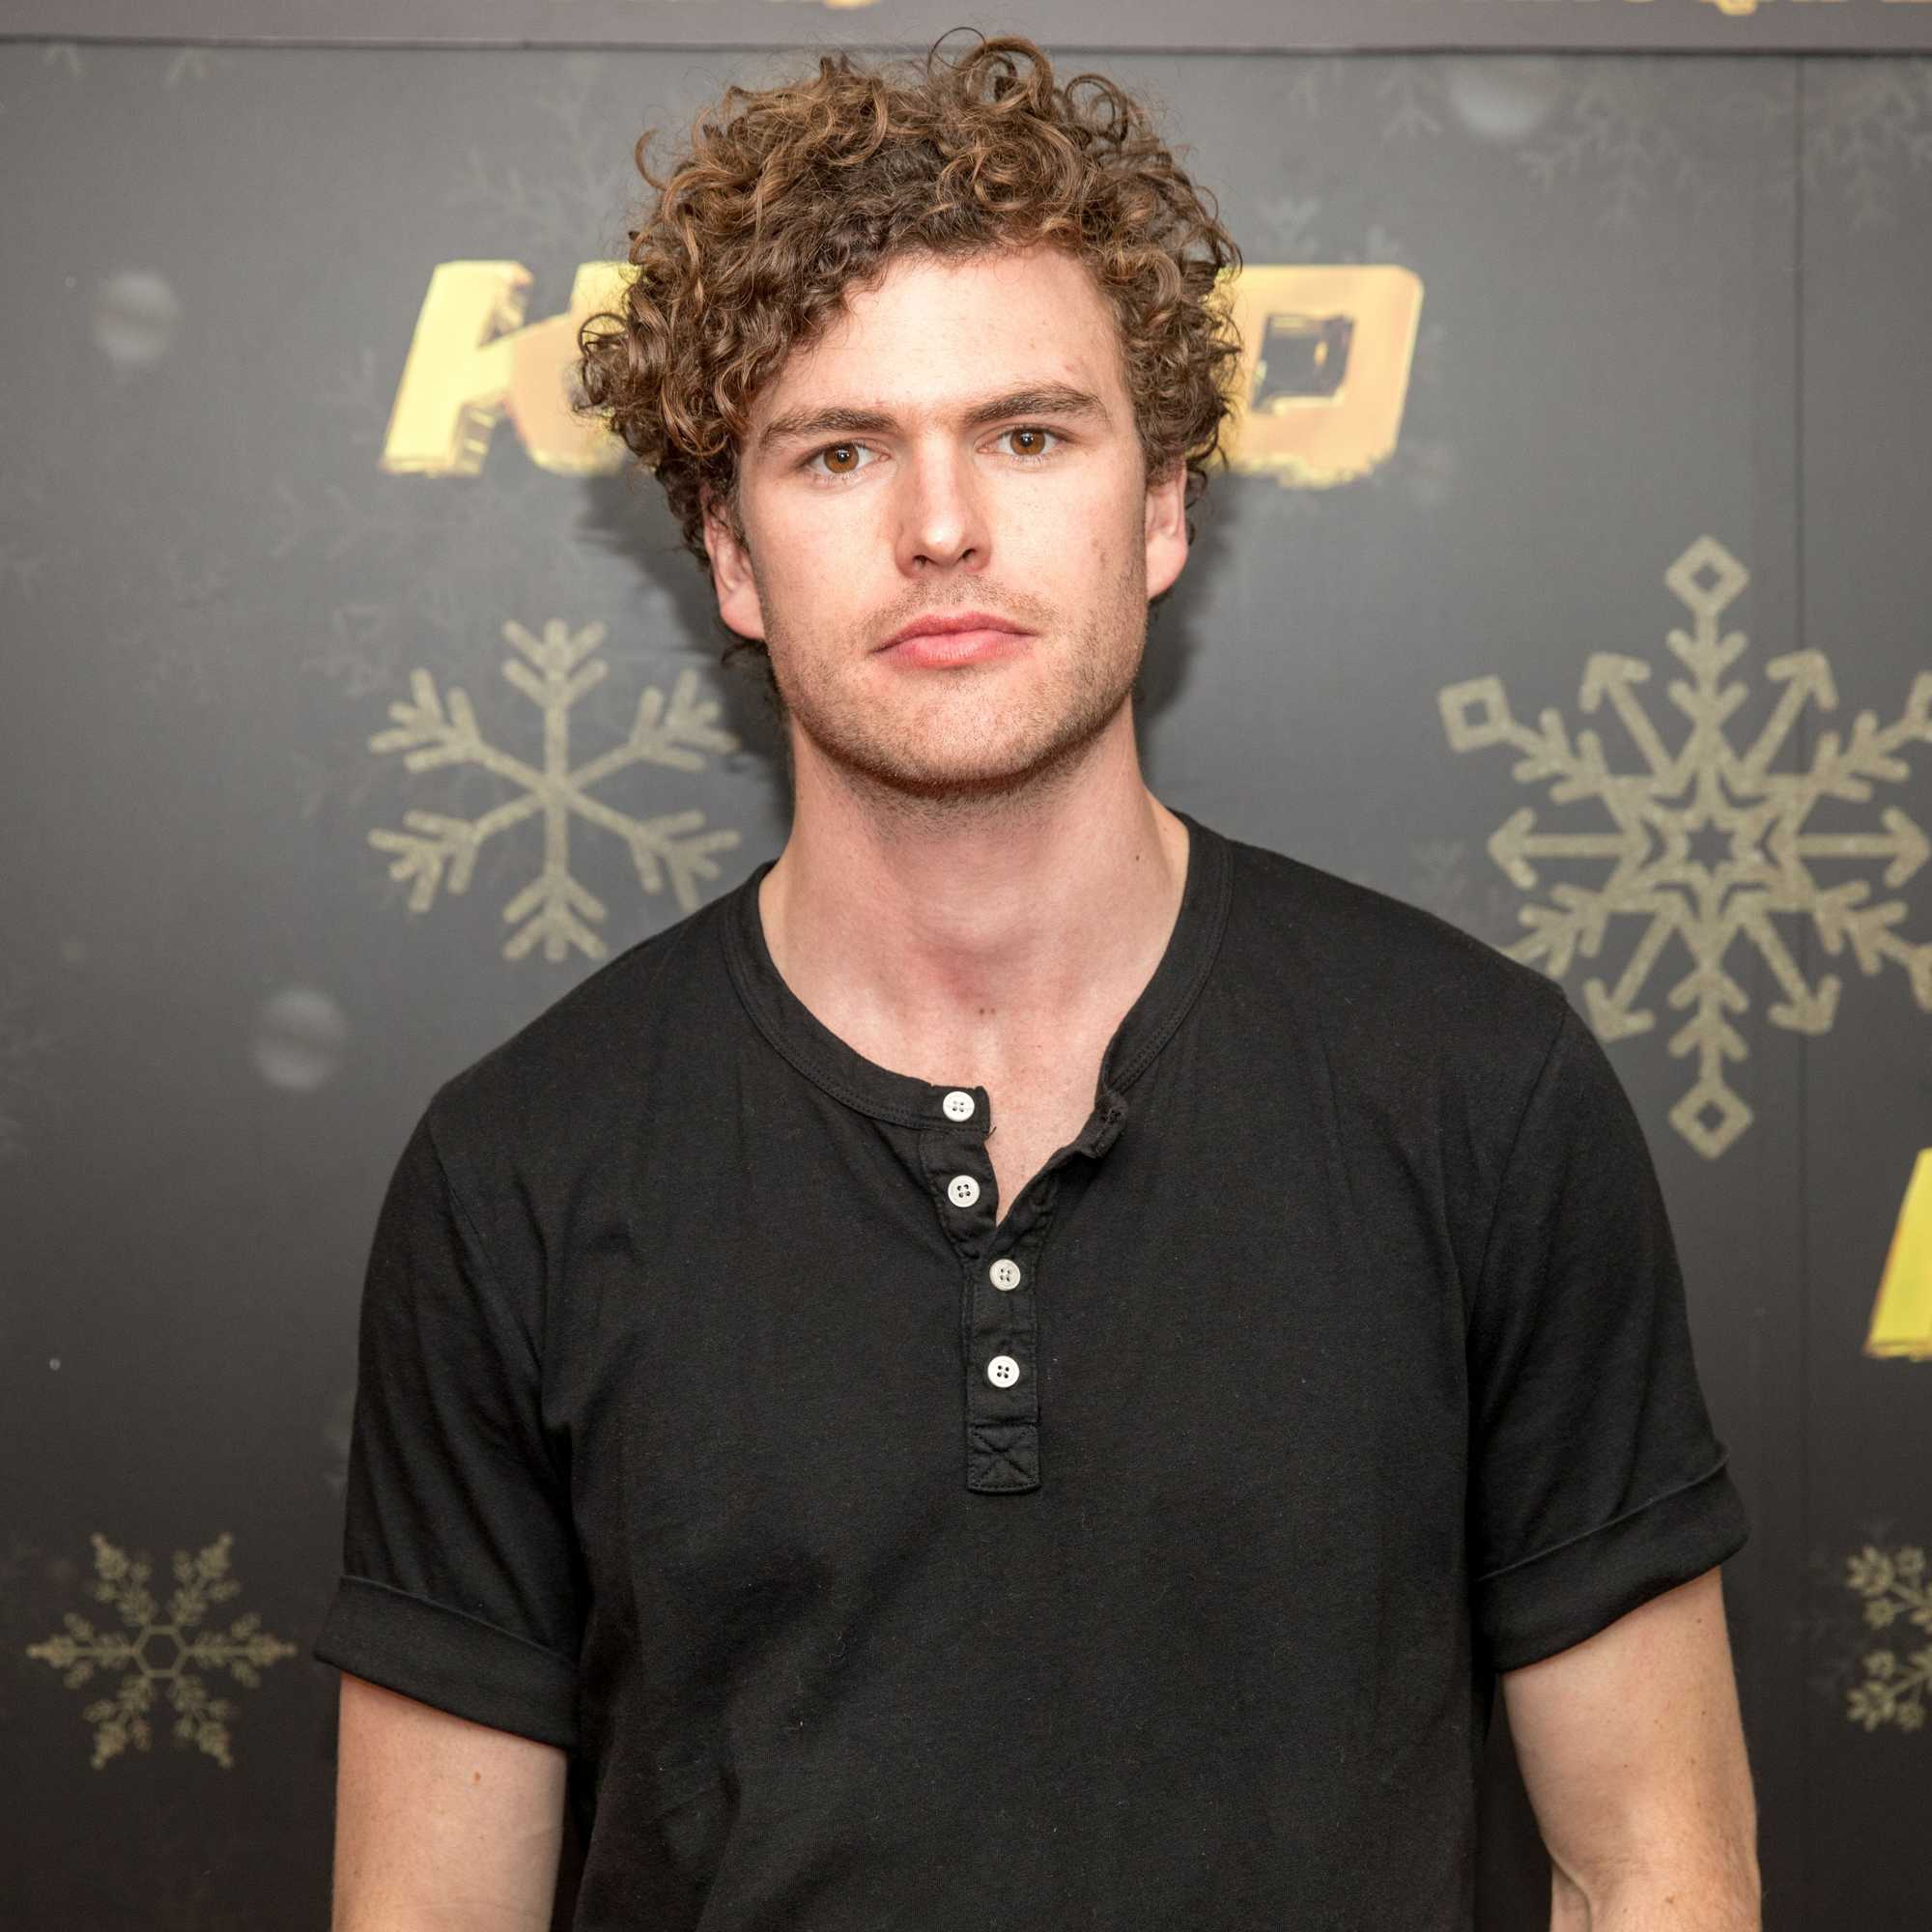 australian singer/songwriter vance joy with his short curly light brown hair